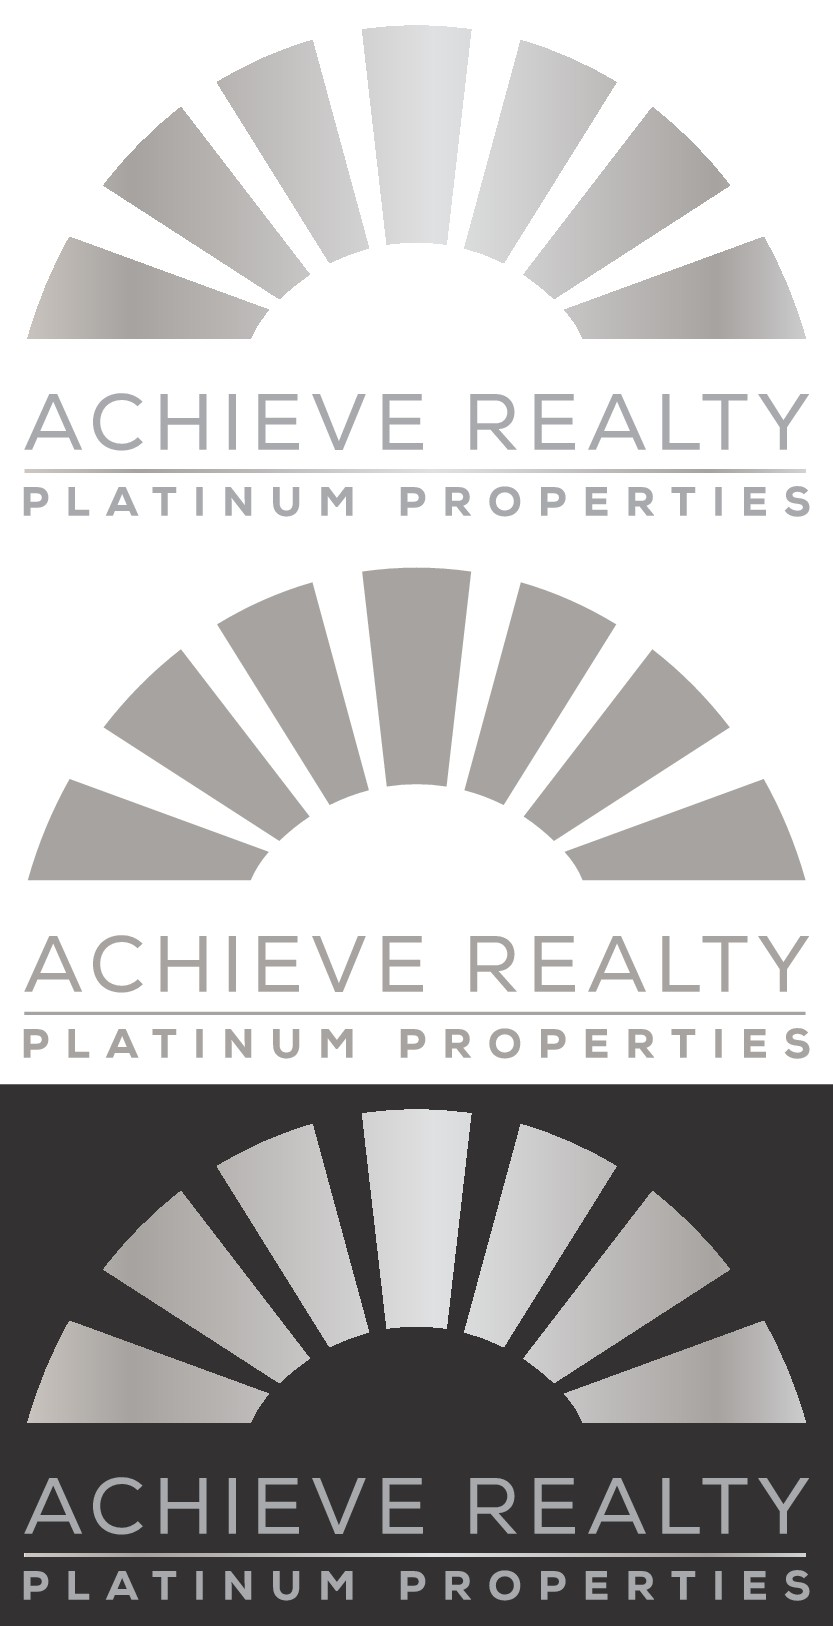 Create a logo for a new luxury real estate brand.